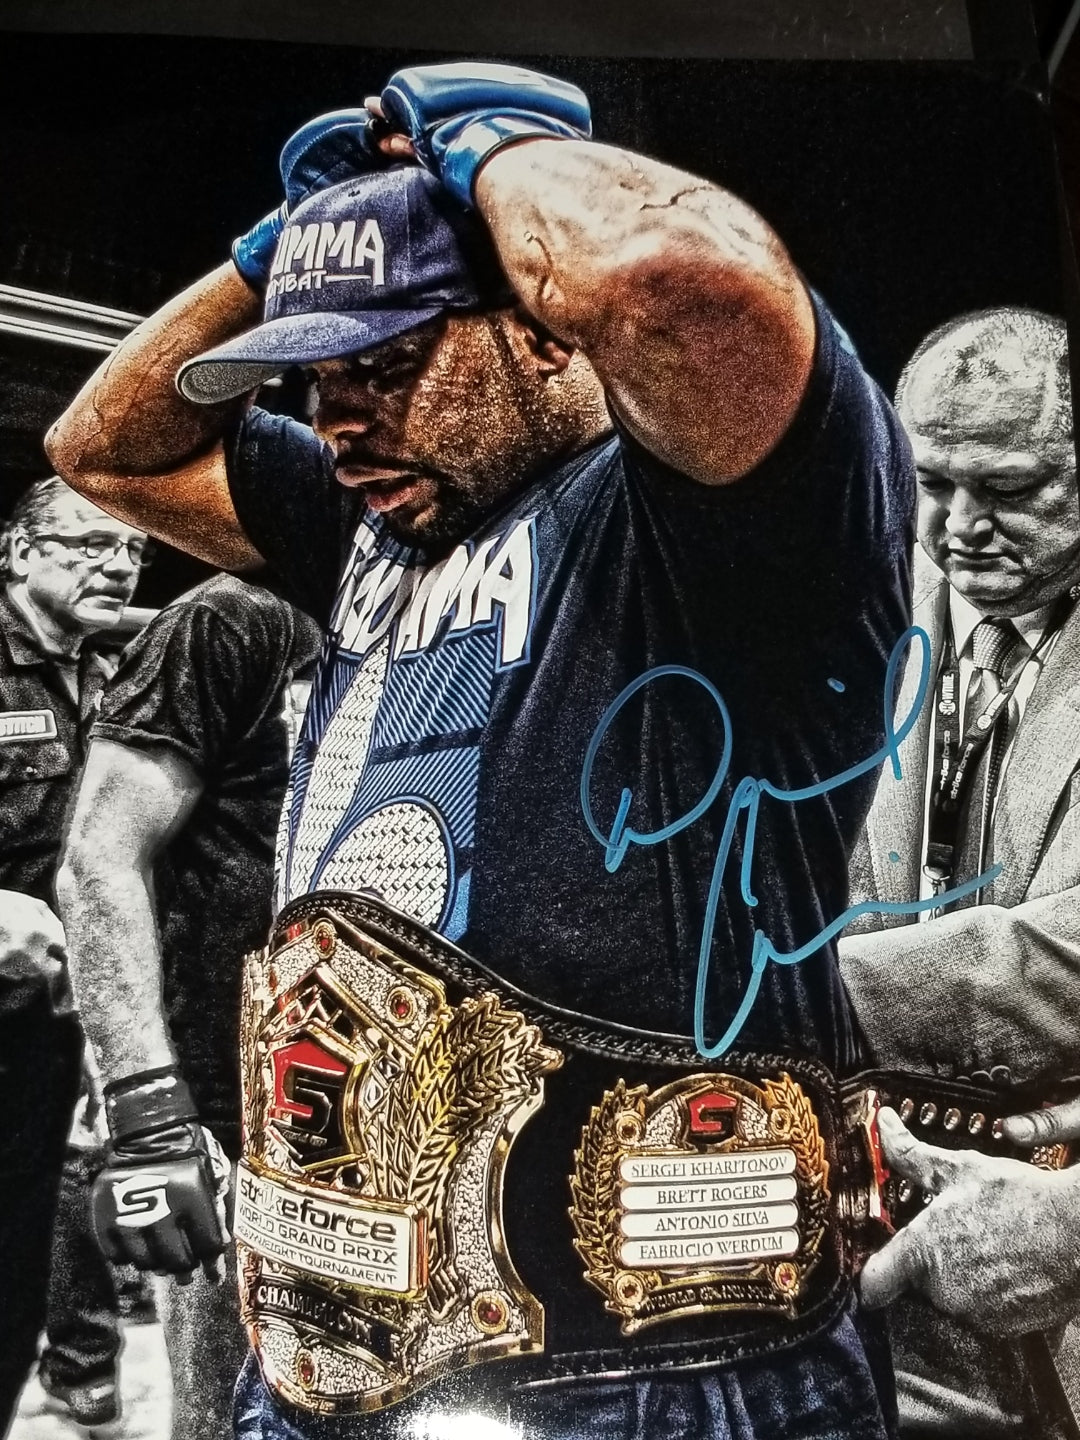 UFC 230 Special Daniel Cormier Signed 11x14 Photo w/COA CHAMP CHAMP (HWGP)